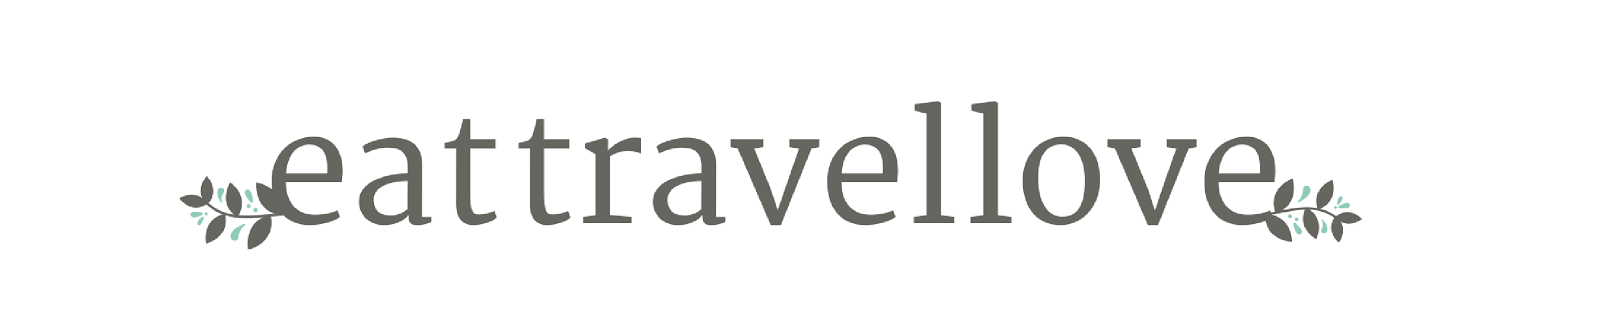 Eat Travel Love - Travel & Lifestyle Blog